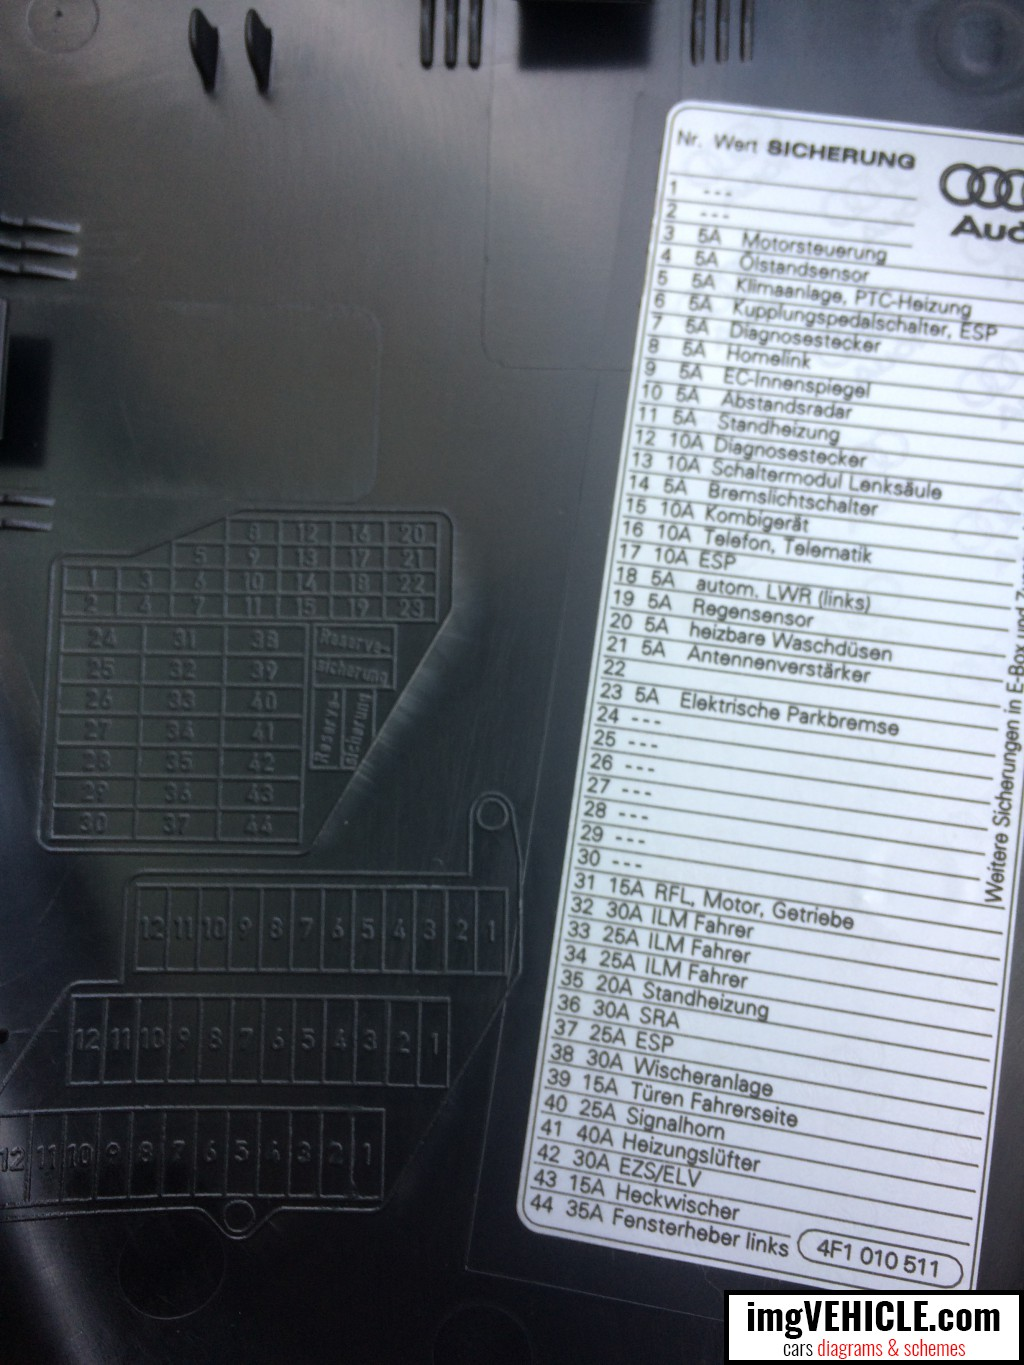 Audi A6 C6 Fuse Box Diagrams Schemes G6 Location Dash Panel Diagram